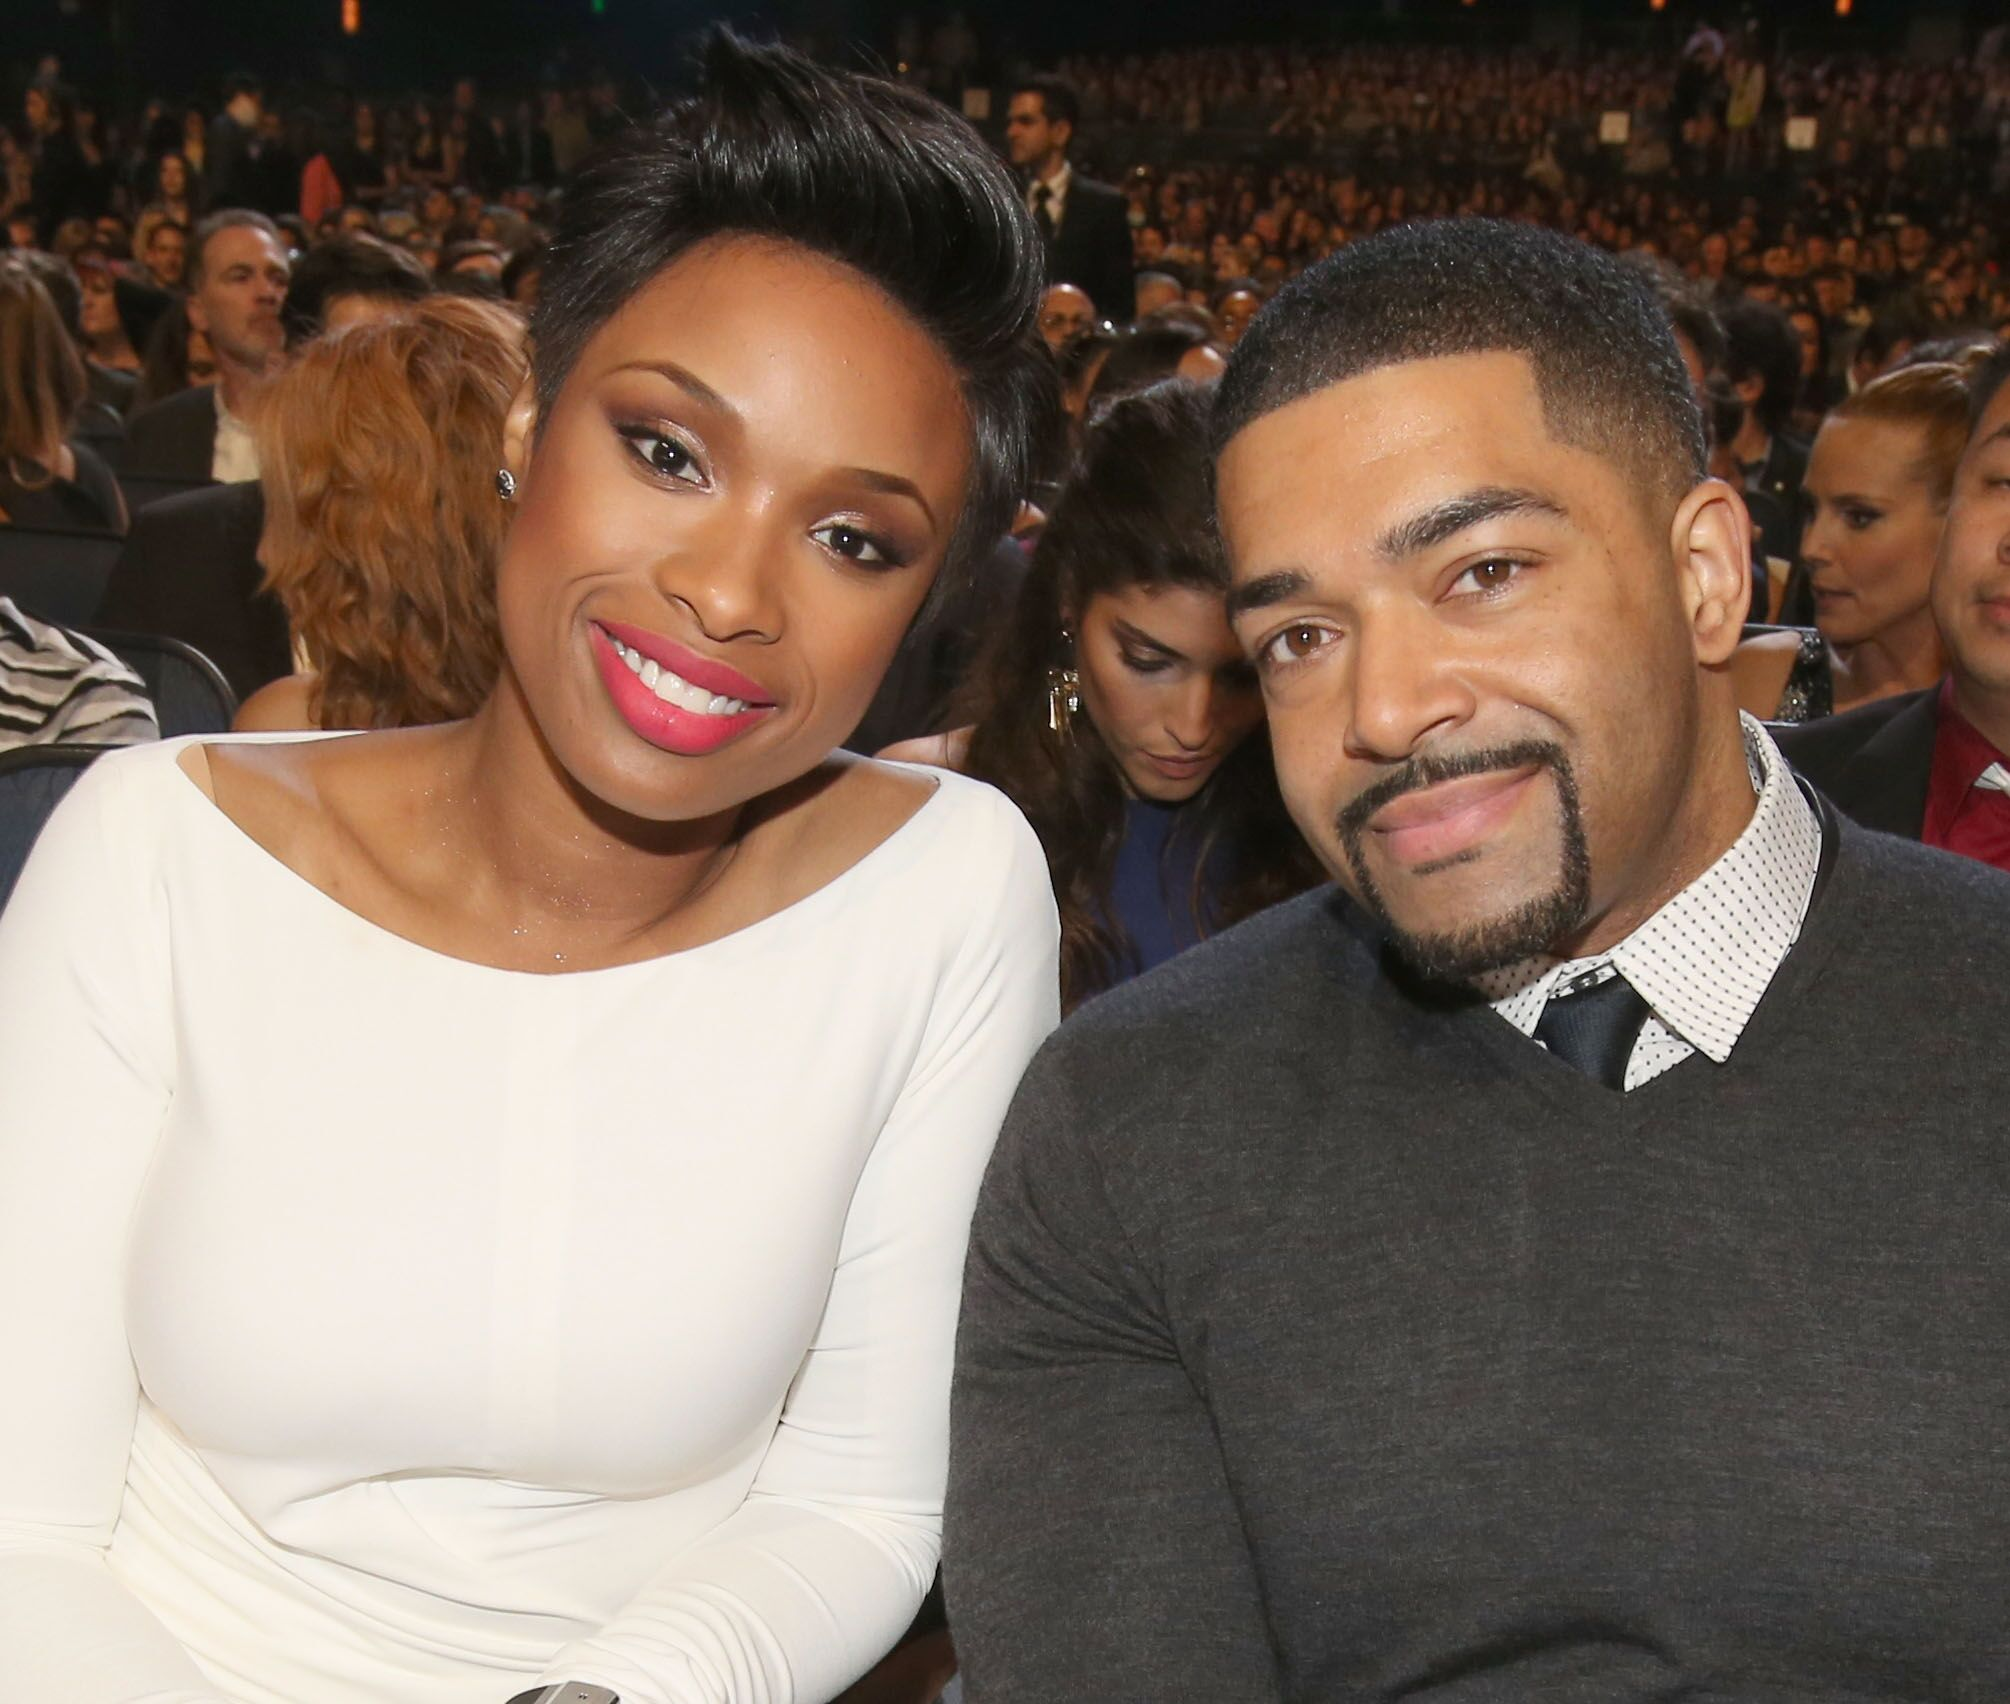 Jennifer Hudson (L) and David Otunga attend The 40th Annual People's Choice Awards at Nokia Theatre L.A. Live on January 8, 2014 in Los Angeles, California. | Source: Getty Images